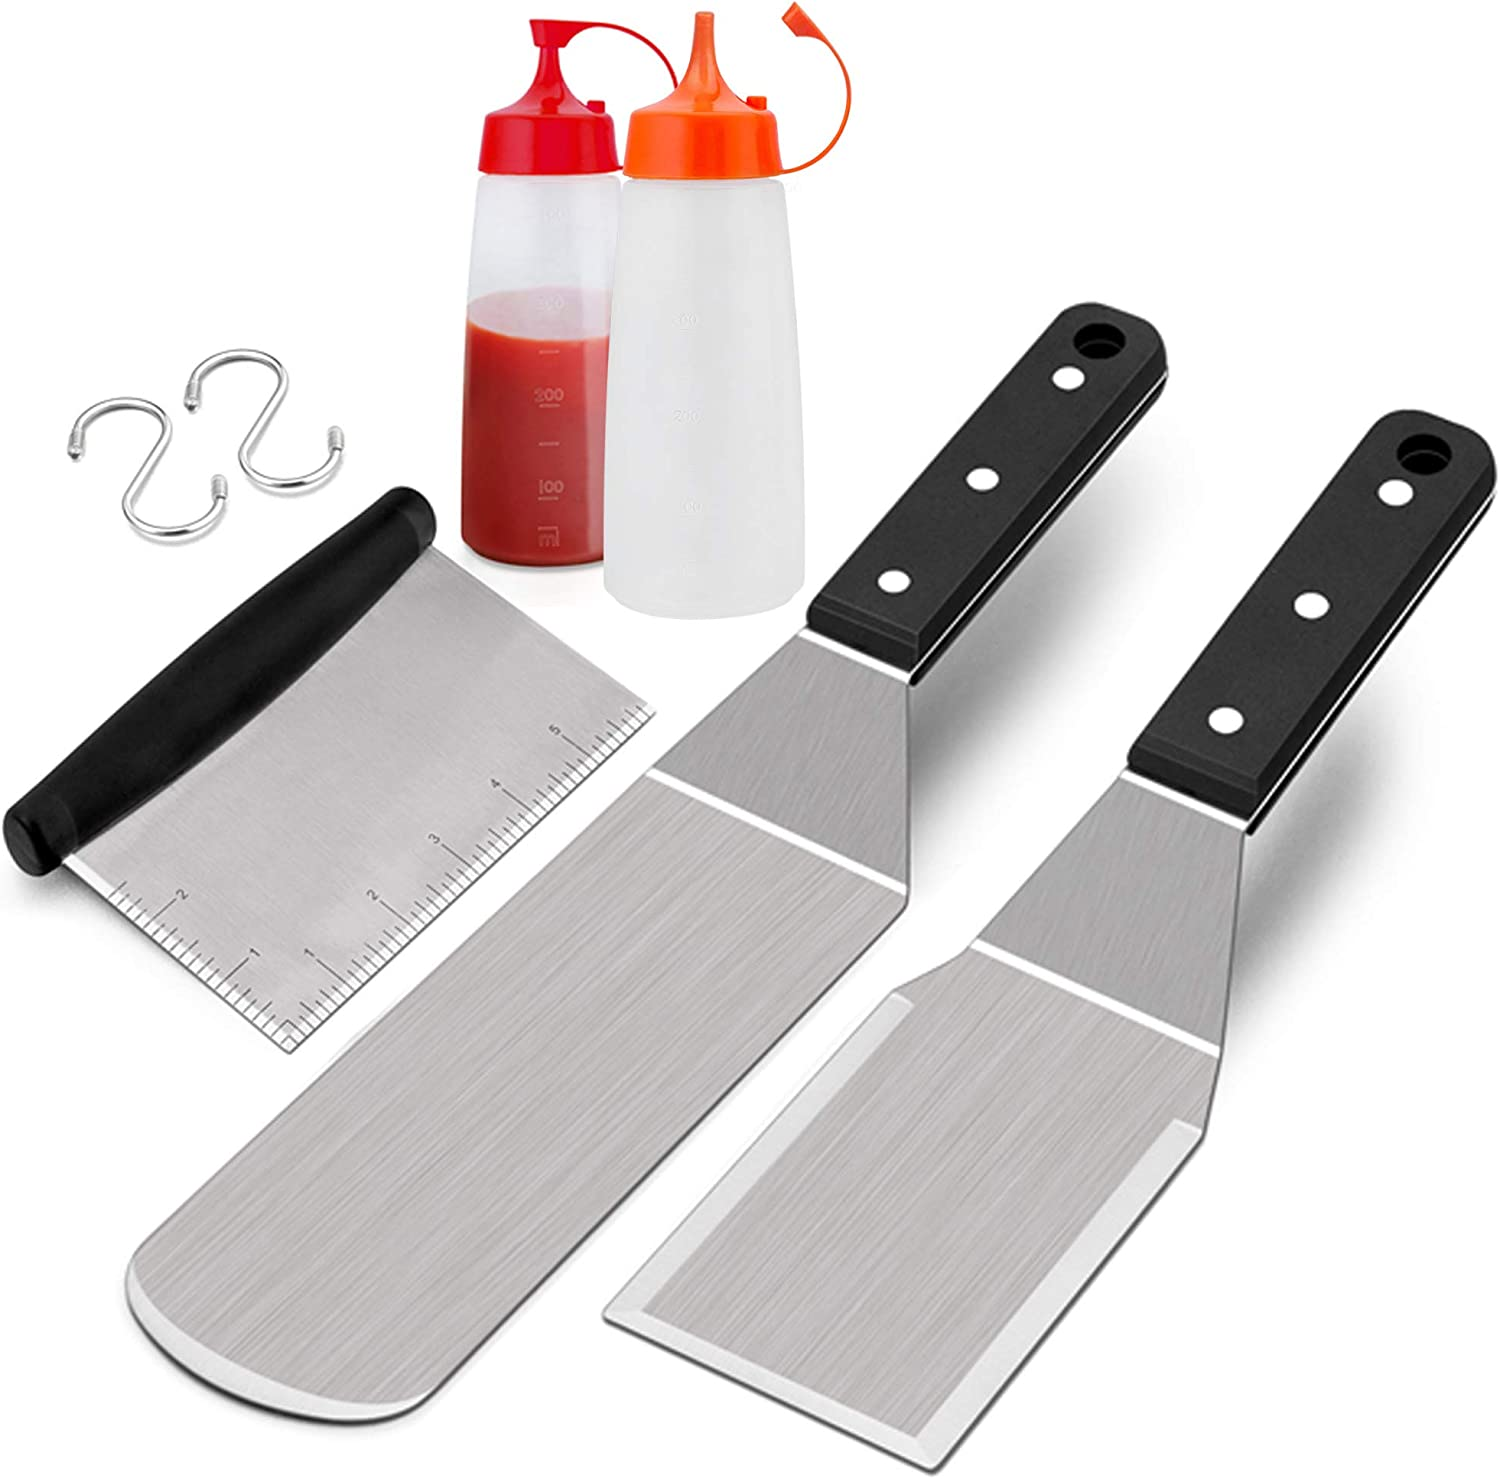 S Hooks /& Wooden Handle with Rivets Metal Spatula Set of 2 Commercial Grade Man Gift Box Leonyo Stainless Steel Griddle Accessories Griddle Spatula Scraper for Flat Top Teppanyaki BBQ Cooking